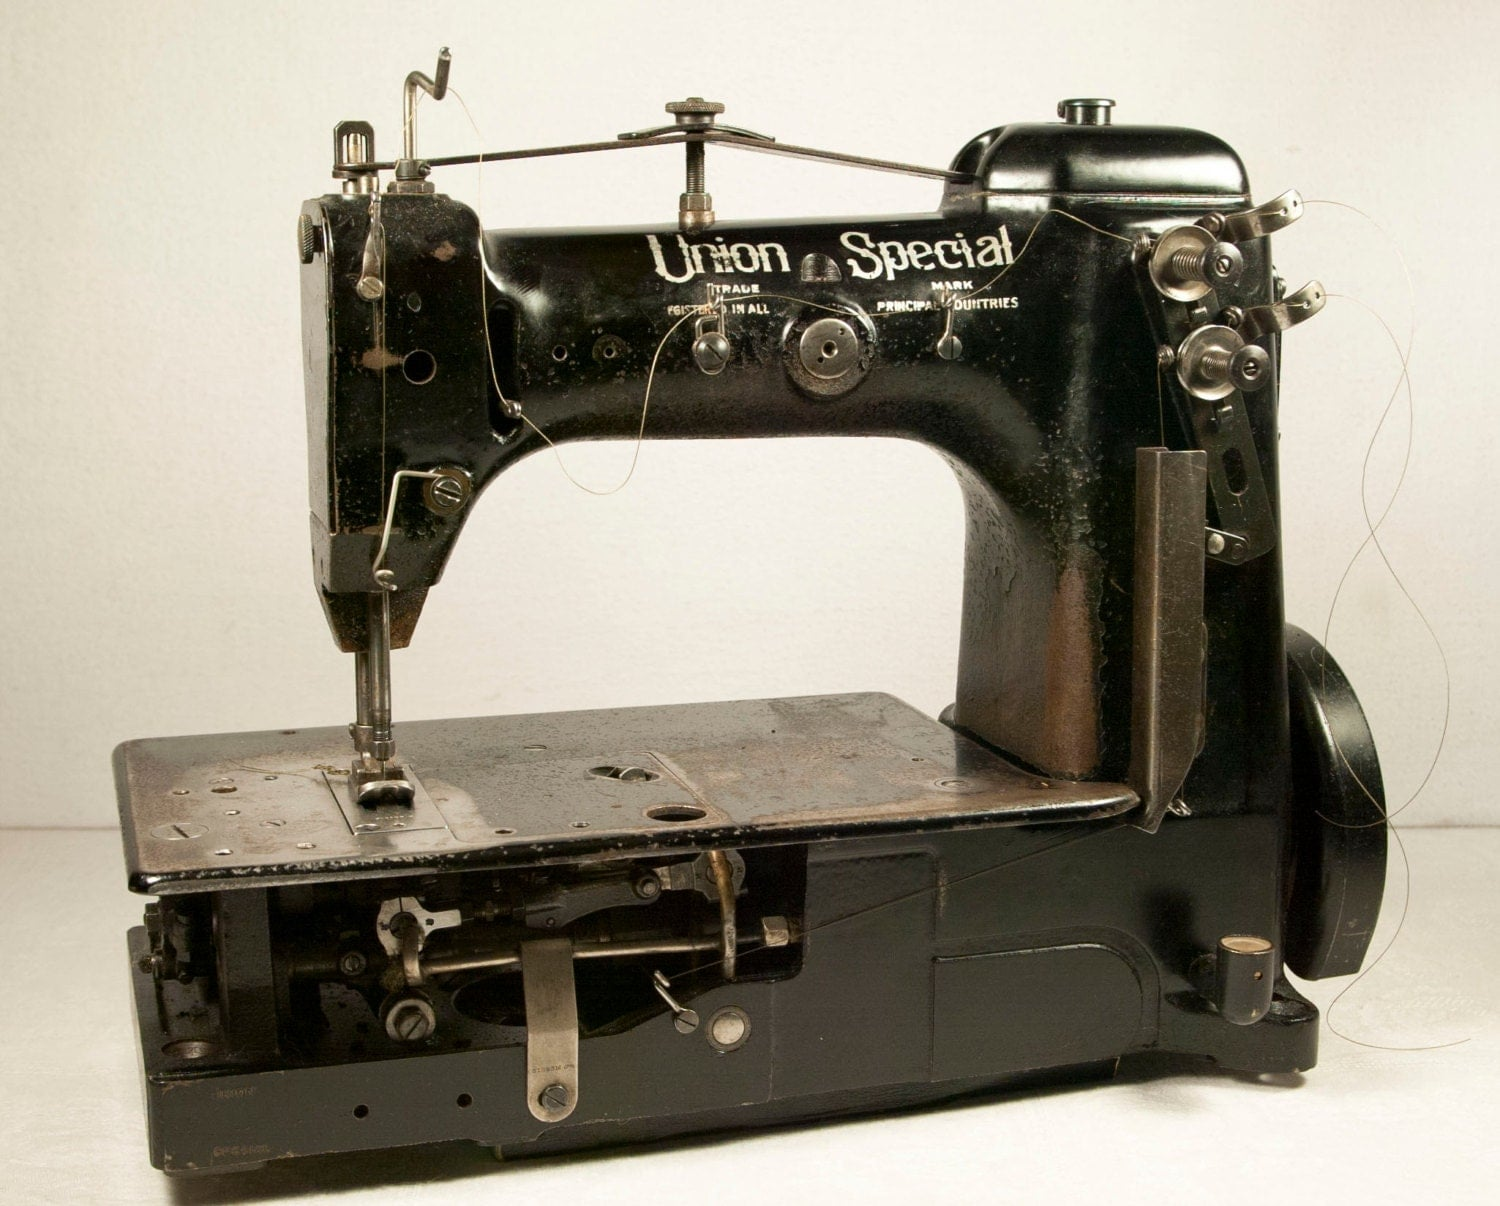 union special sewing machine models